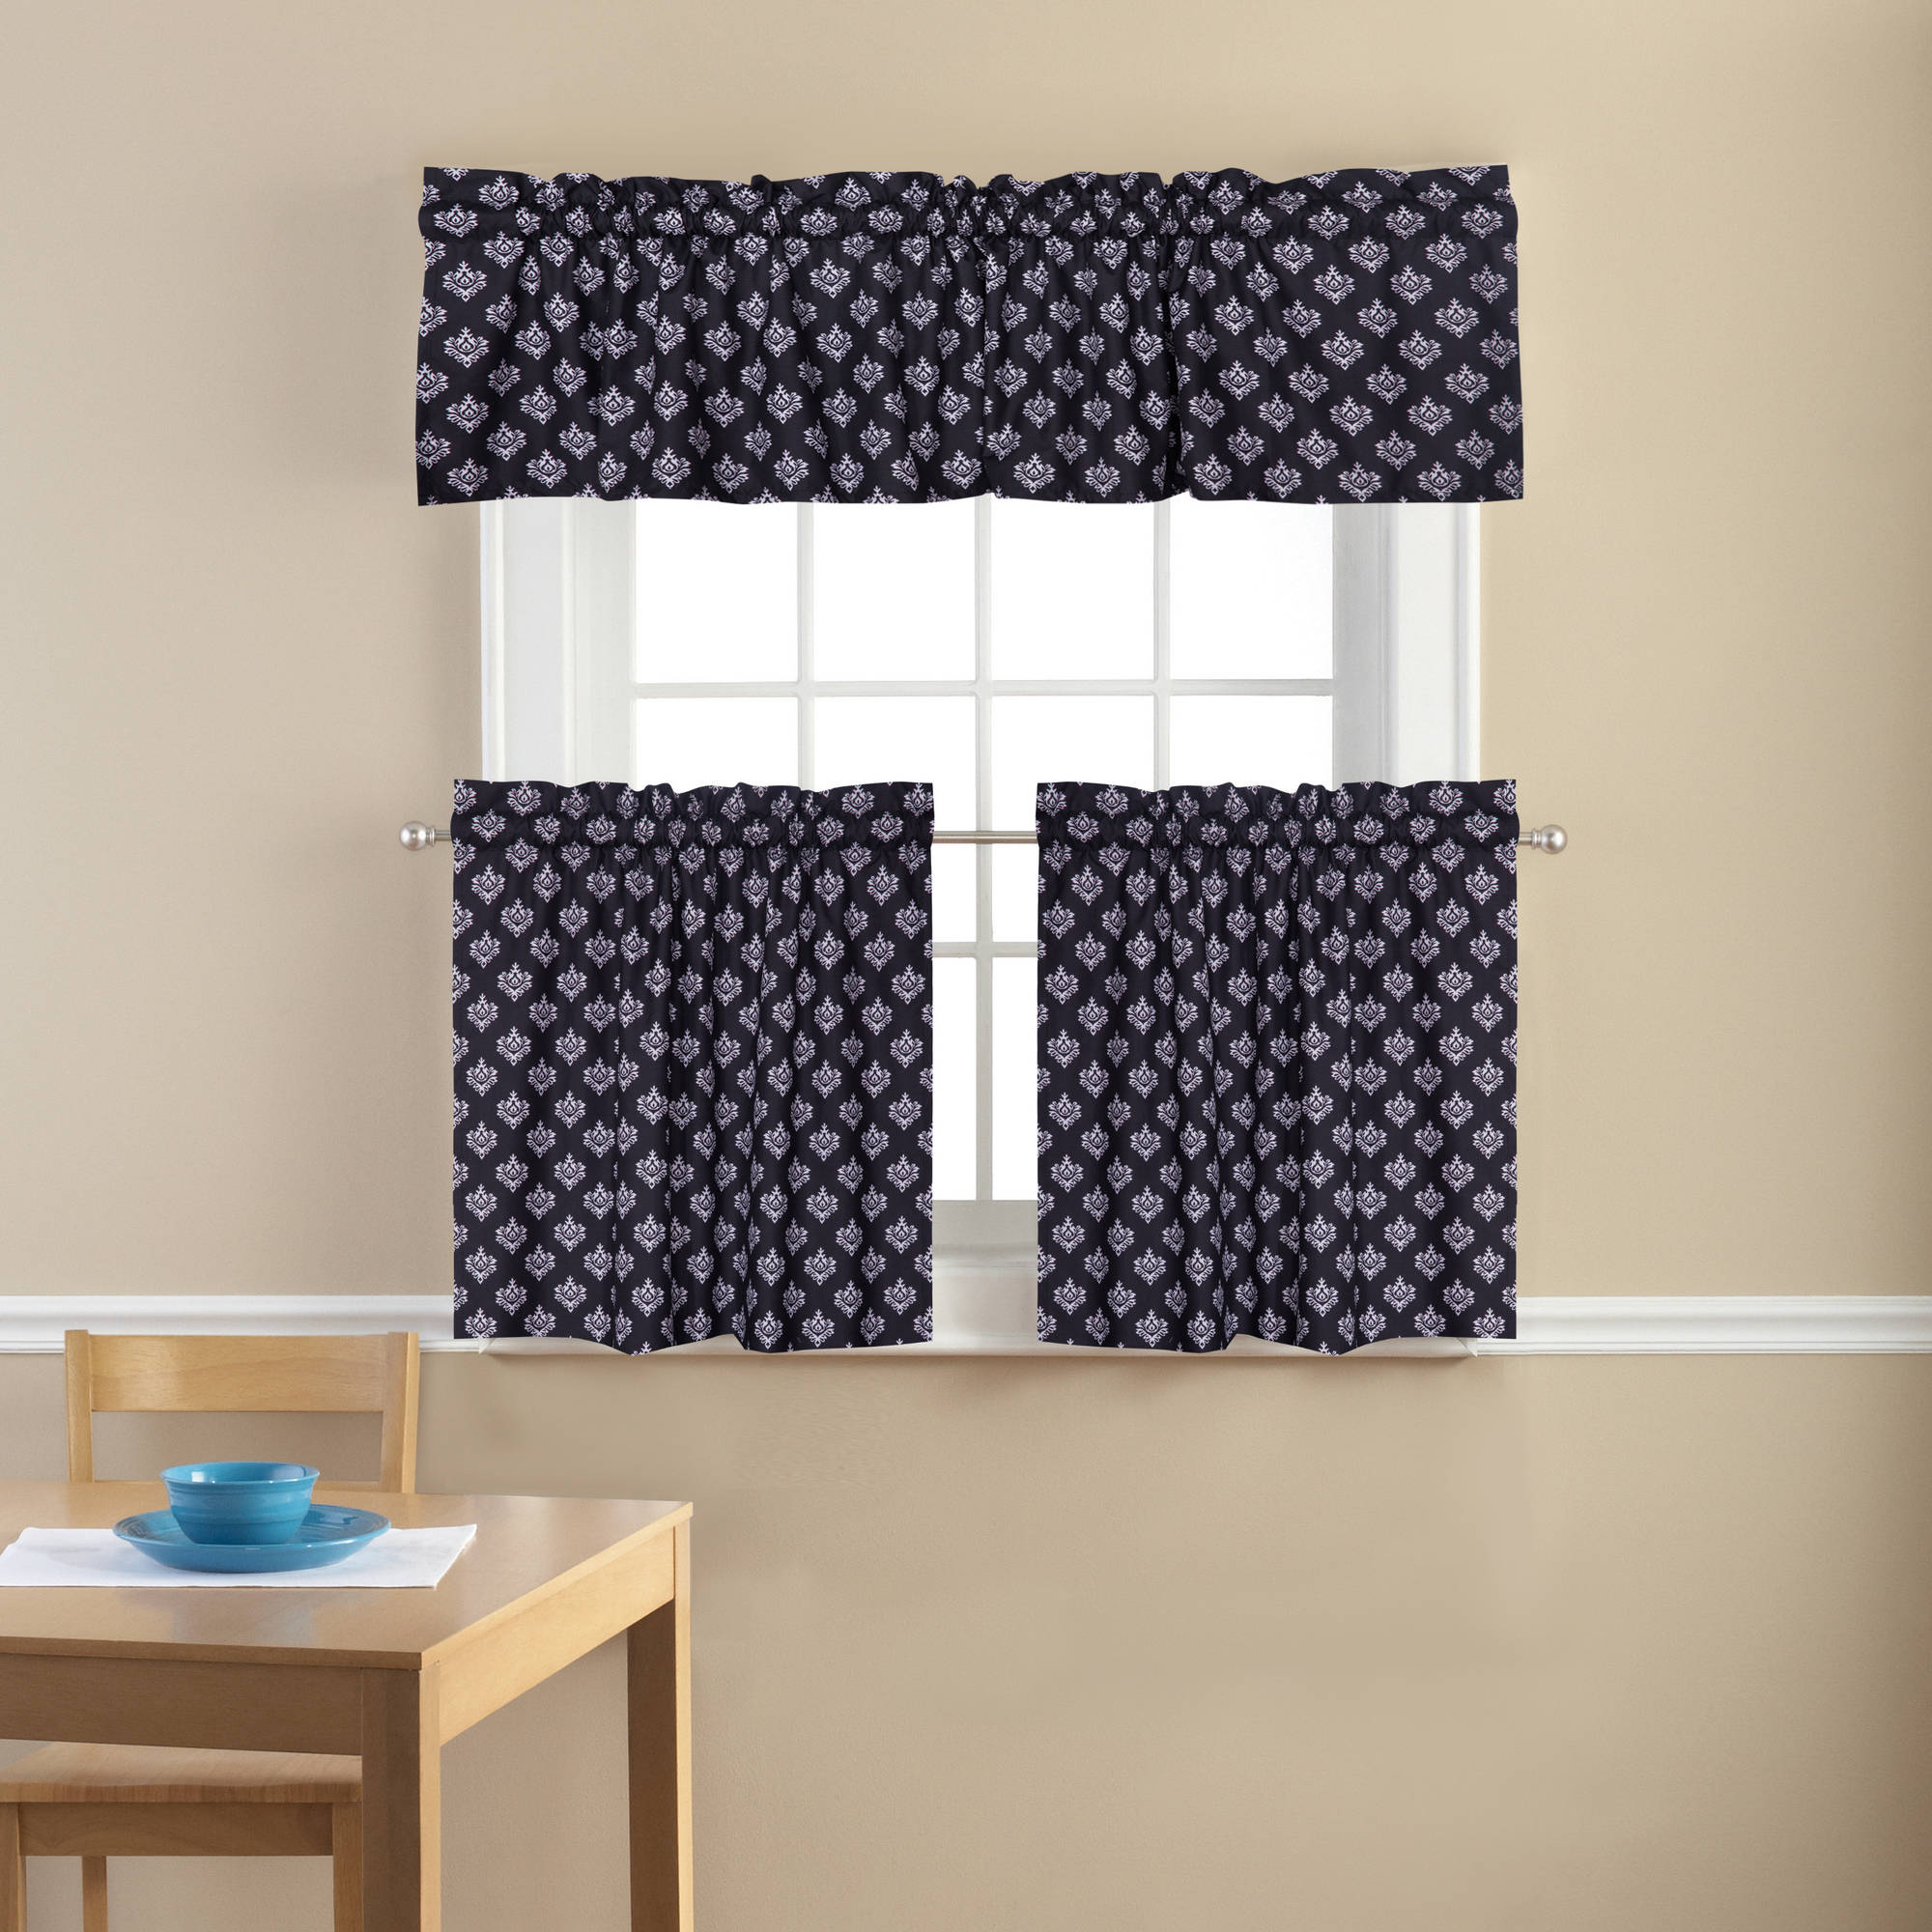 Mainstays Small Damask Classic Noir Kitchen Curtains